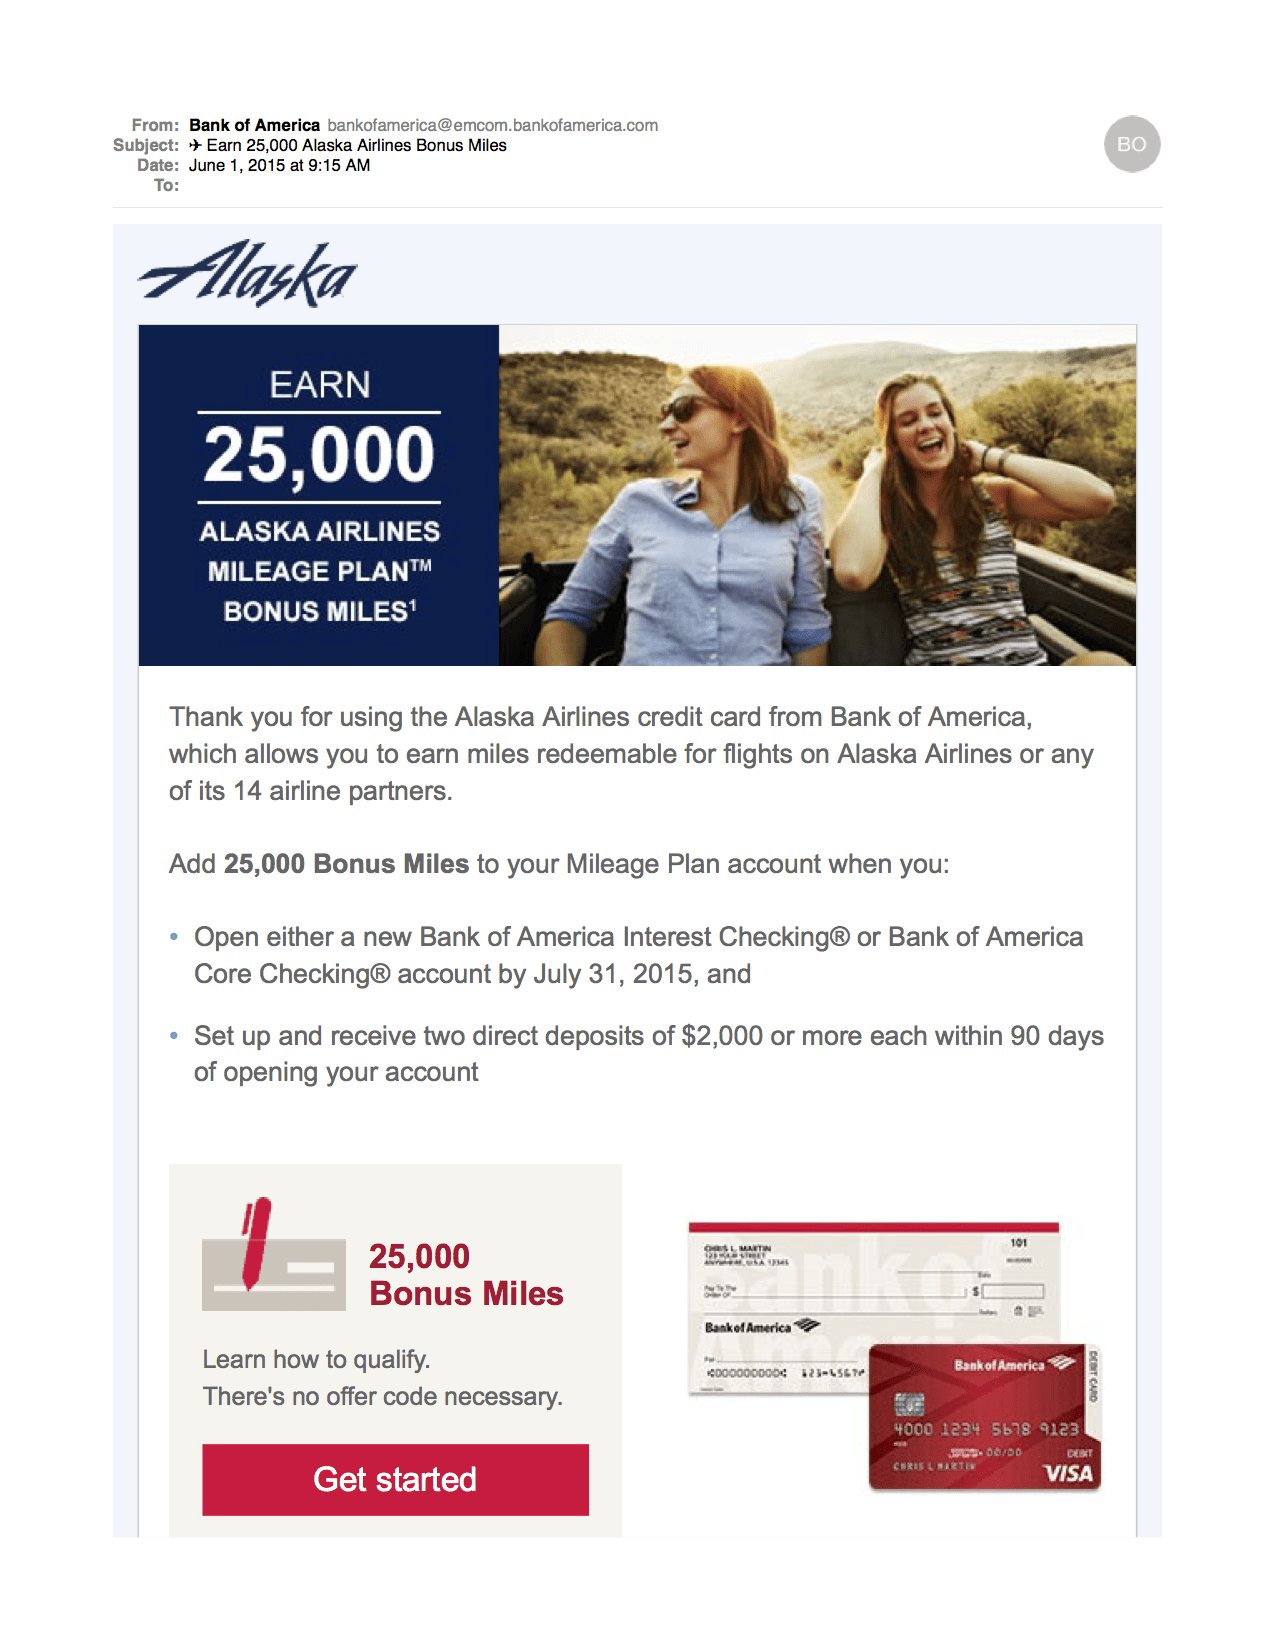 Sep 19, · To qualify for the bonus, open a Bank of America Core Checking® or Bank of America Interest Checking® account by December 31, Once you have done so, present your targeted card, set up and receive qualifying direct deposits totaling $4, or more within the first 90 days of opening your new checking account/5.